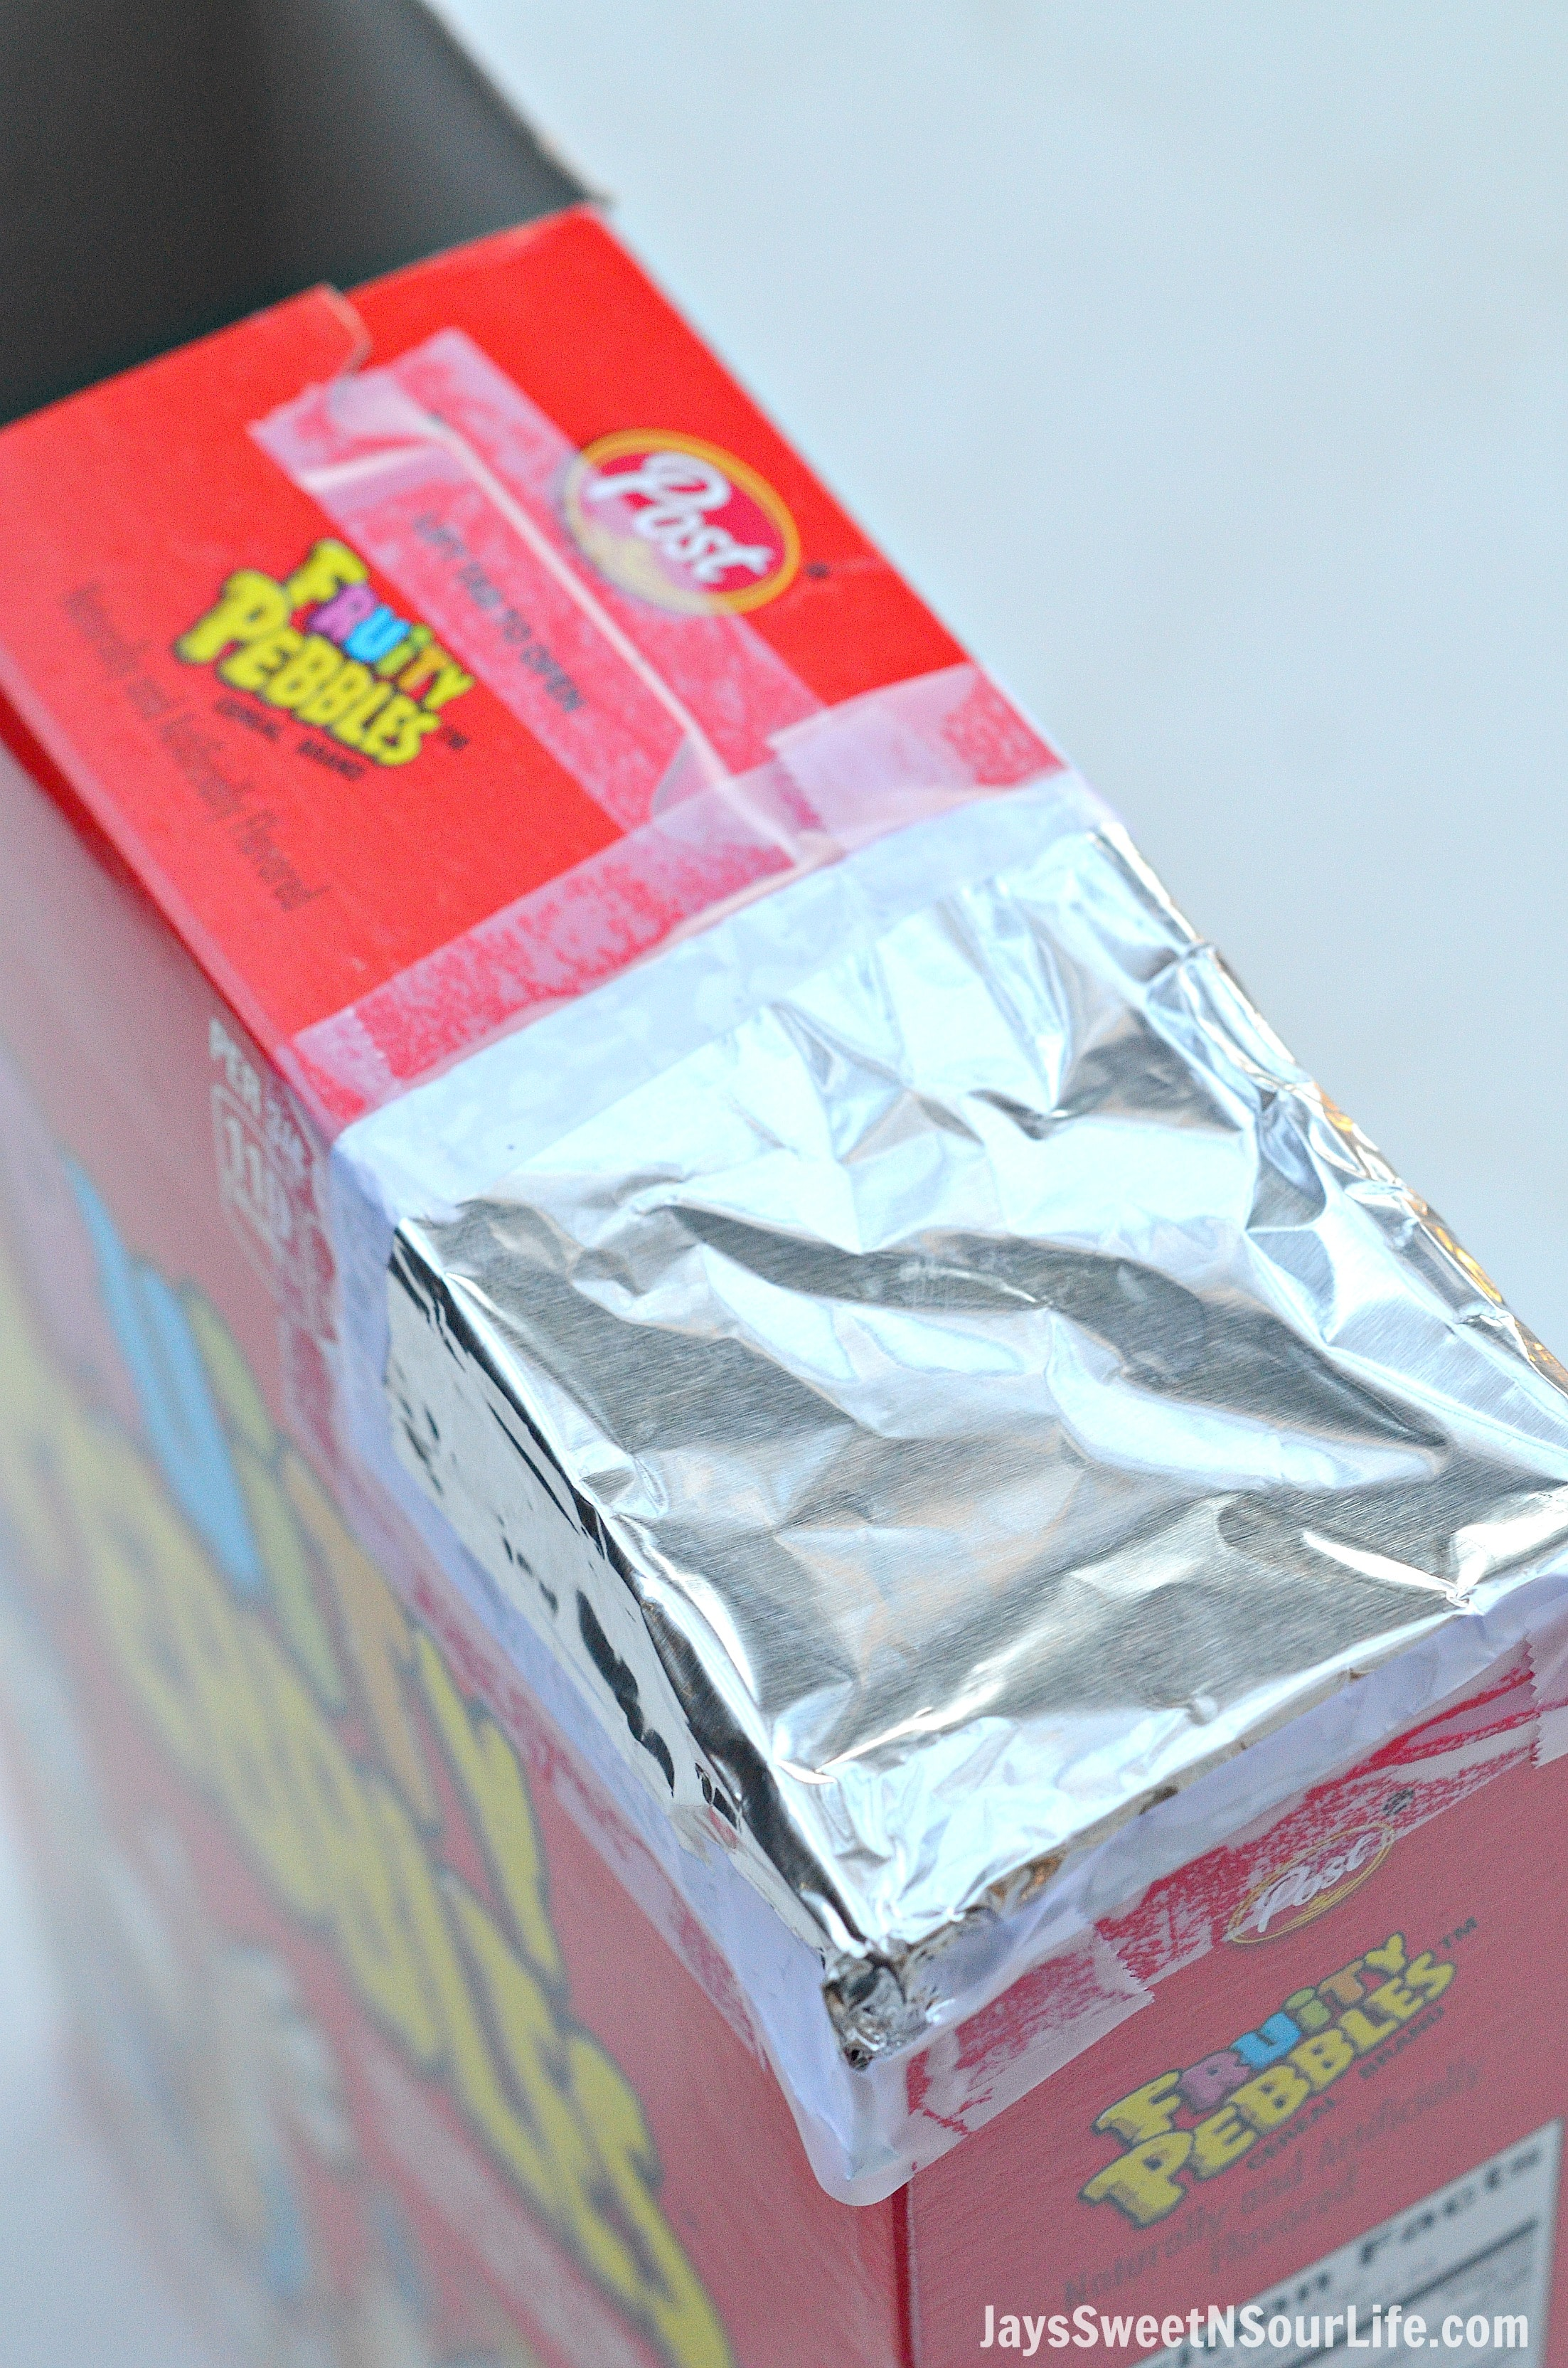 Make your very own DIY Fruity Pebbles Solar Eclipse Viewer for the Great American Eclipse of 2017. An easy-to-follow DIY Solar Eclipse Viewer you can make using tools you probably have lying around the house. This easy-to-make Solar Eclipse Viewer is perfect for families!